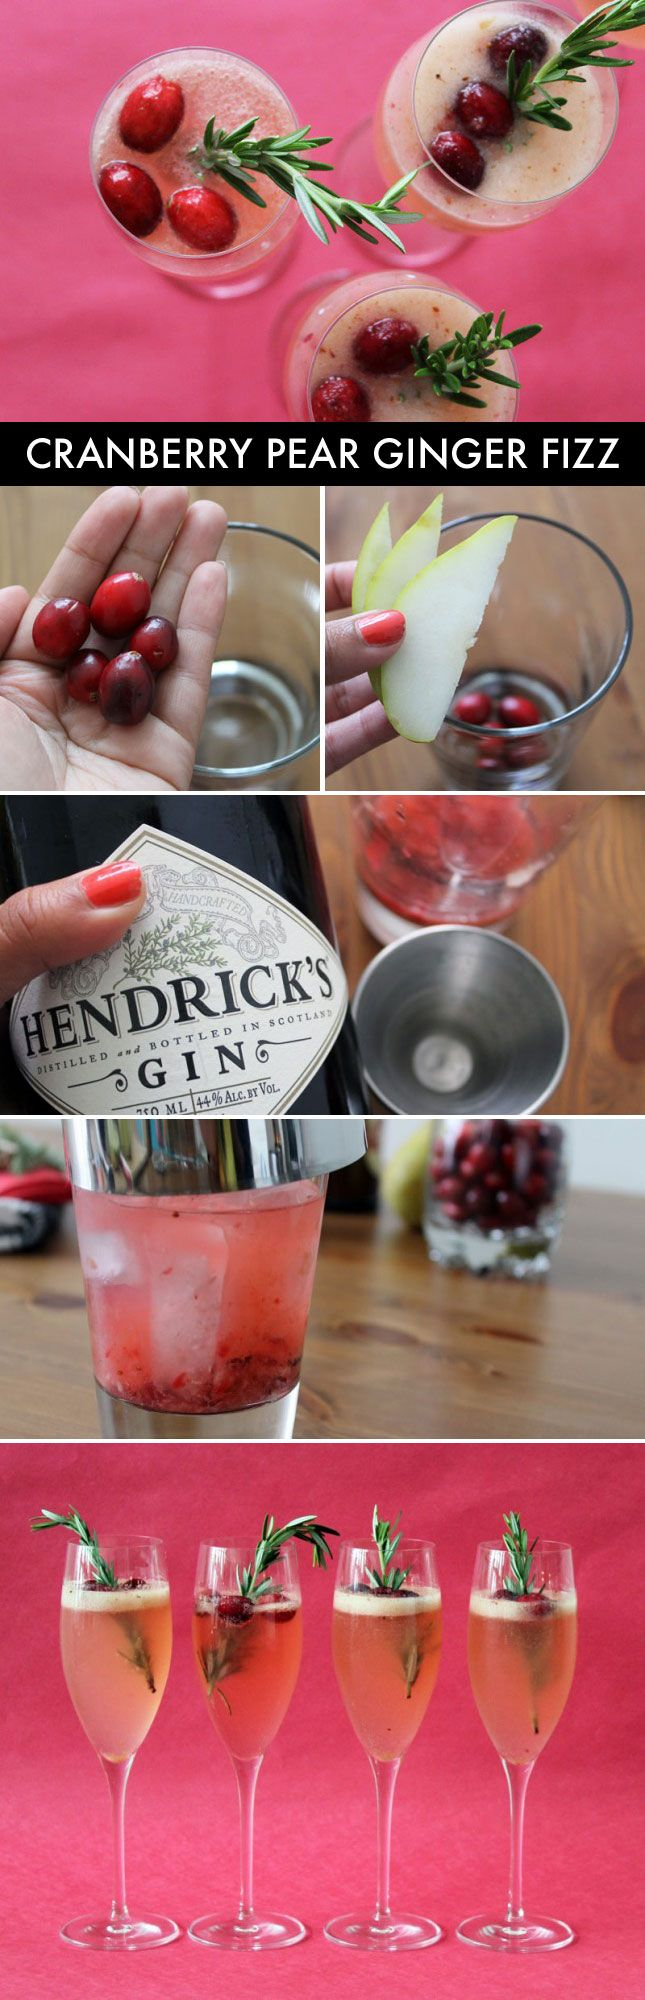 Cranberry pear ginger fizz - such a festive holiday cocktail!